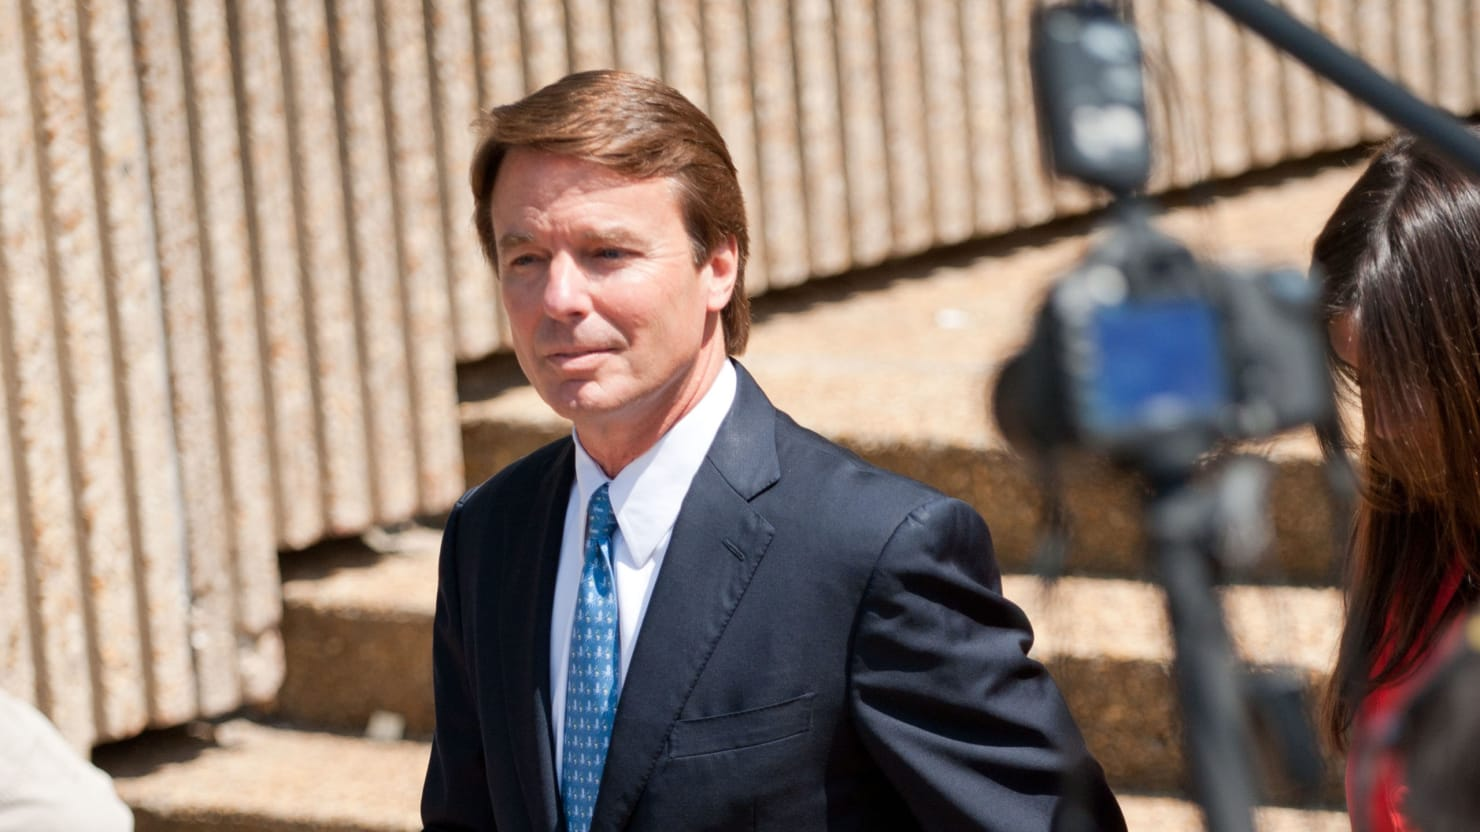 John edwards and gay marriage